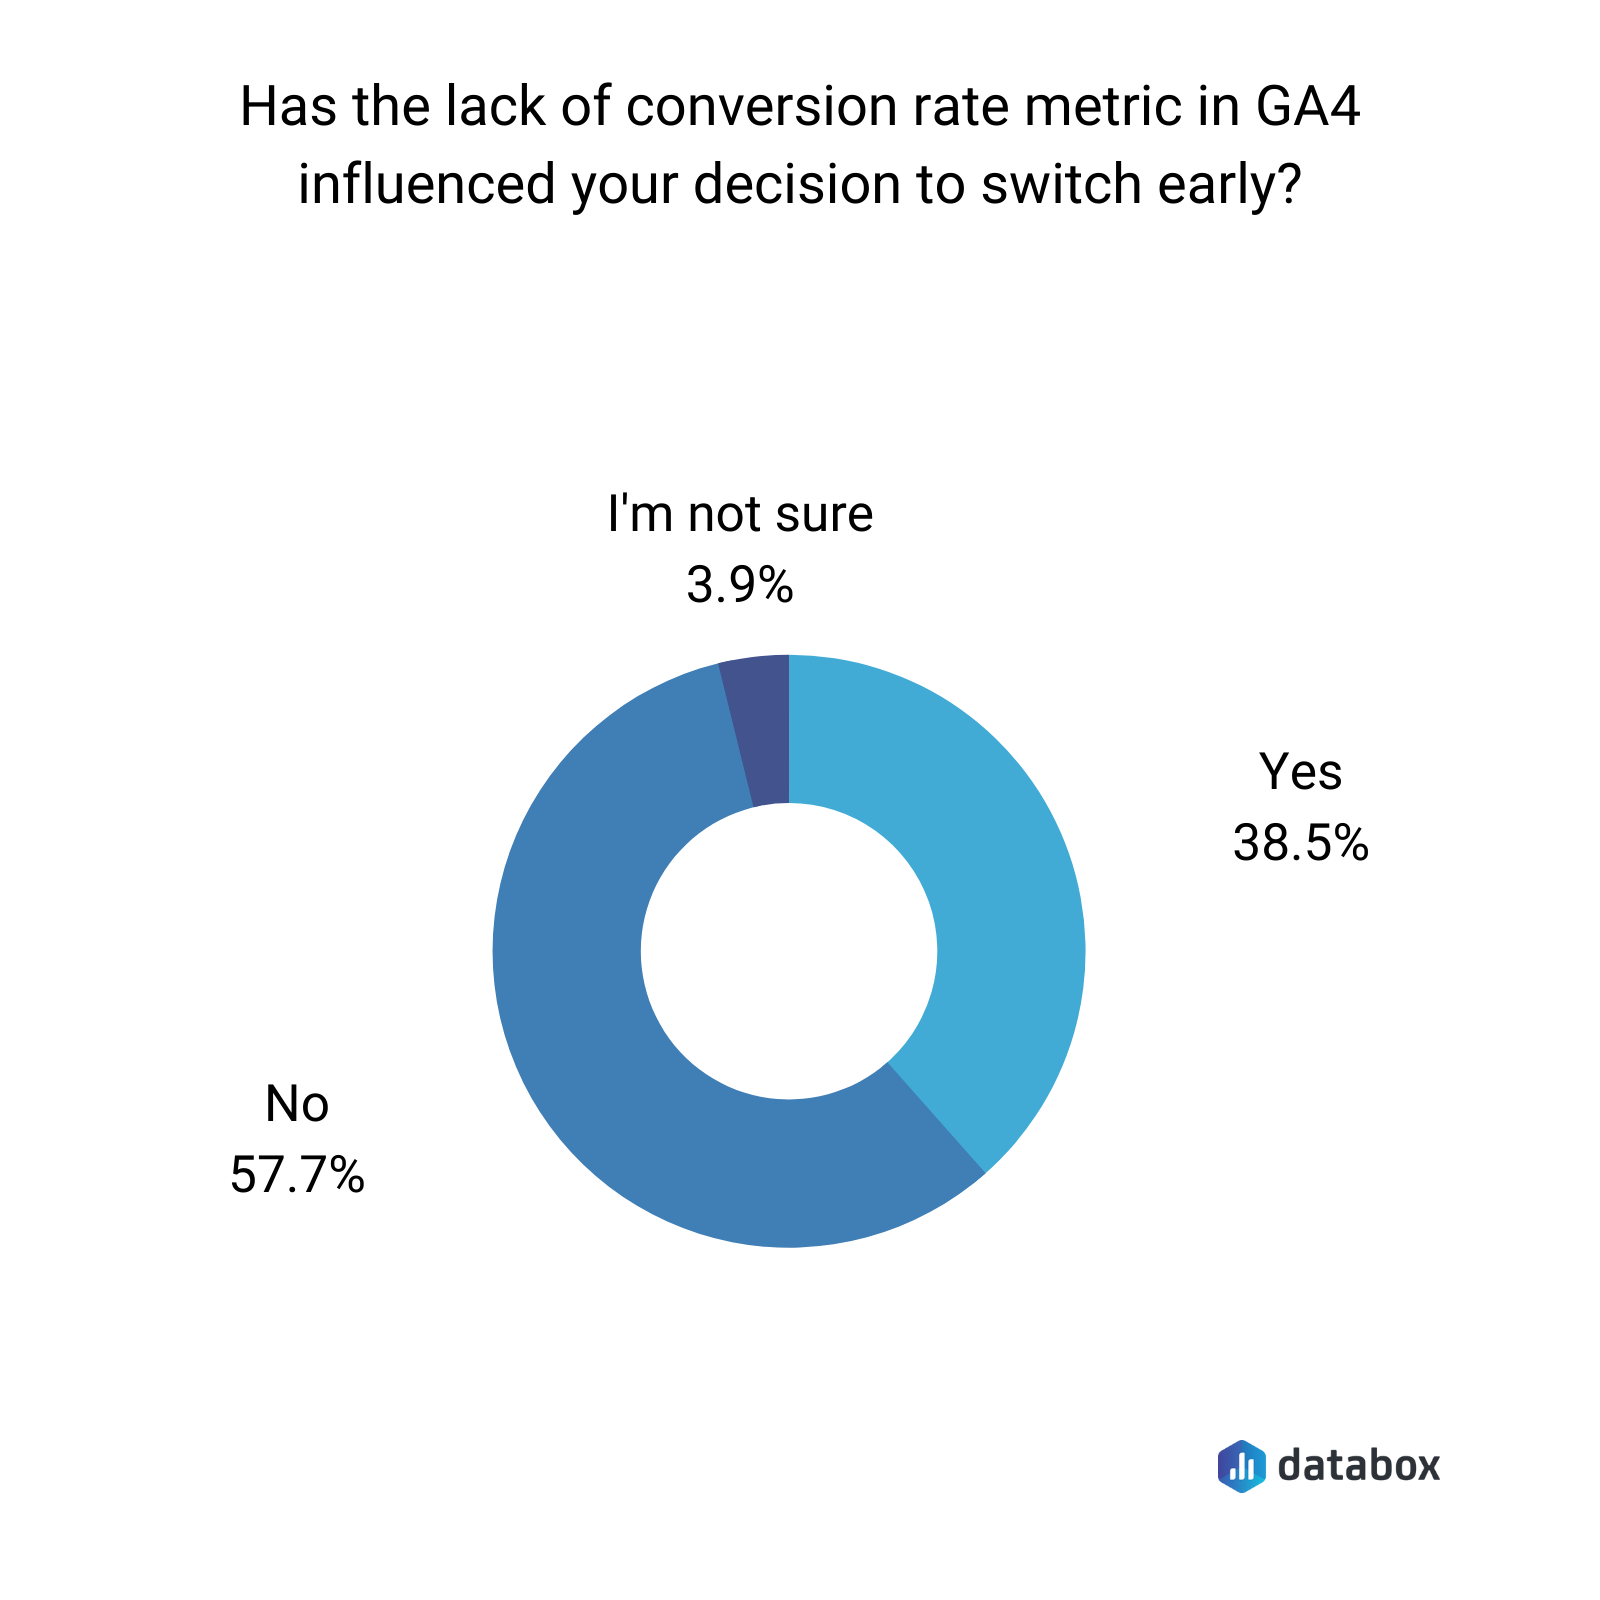 has the lack fo conversion rate metric in GA4 influenced your decision to switch early